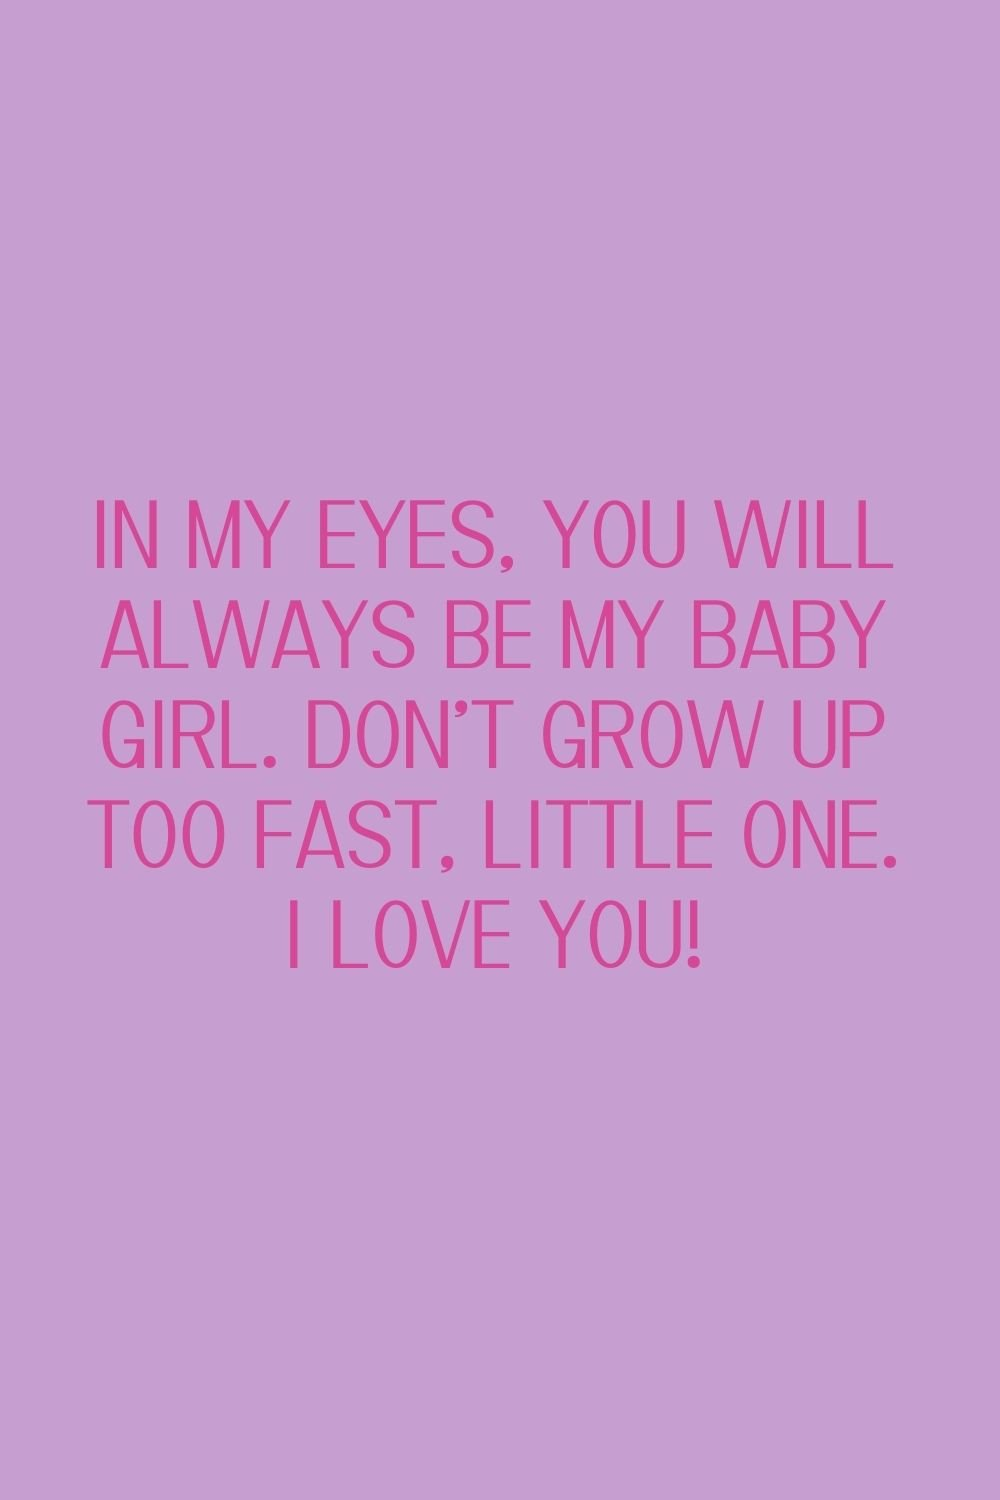 Daughters Day Quotes For Instagram